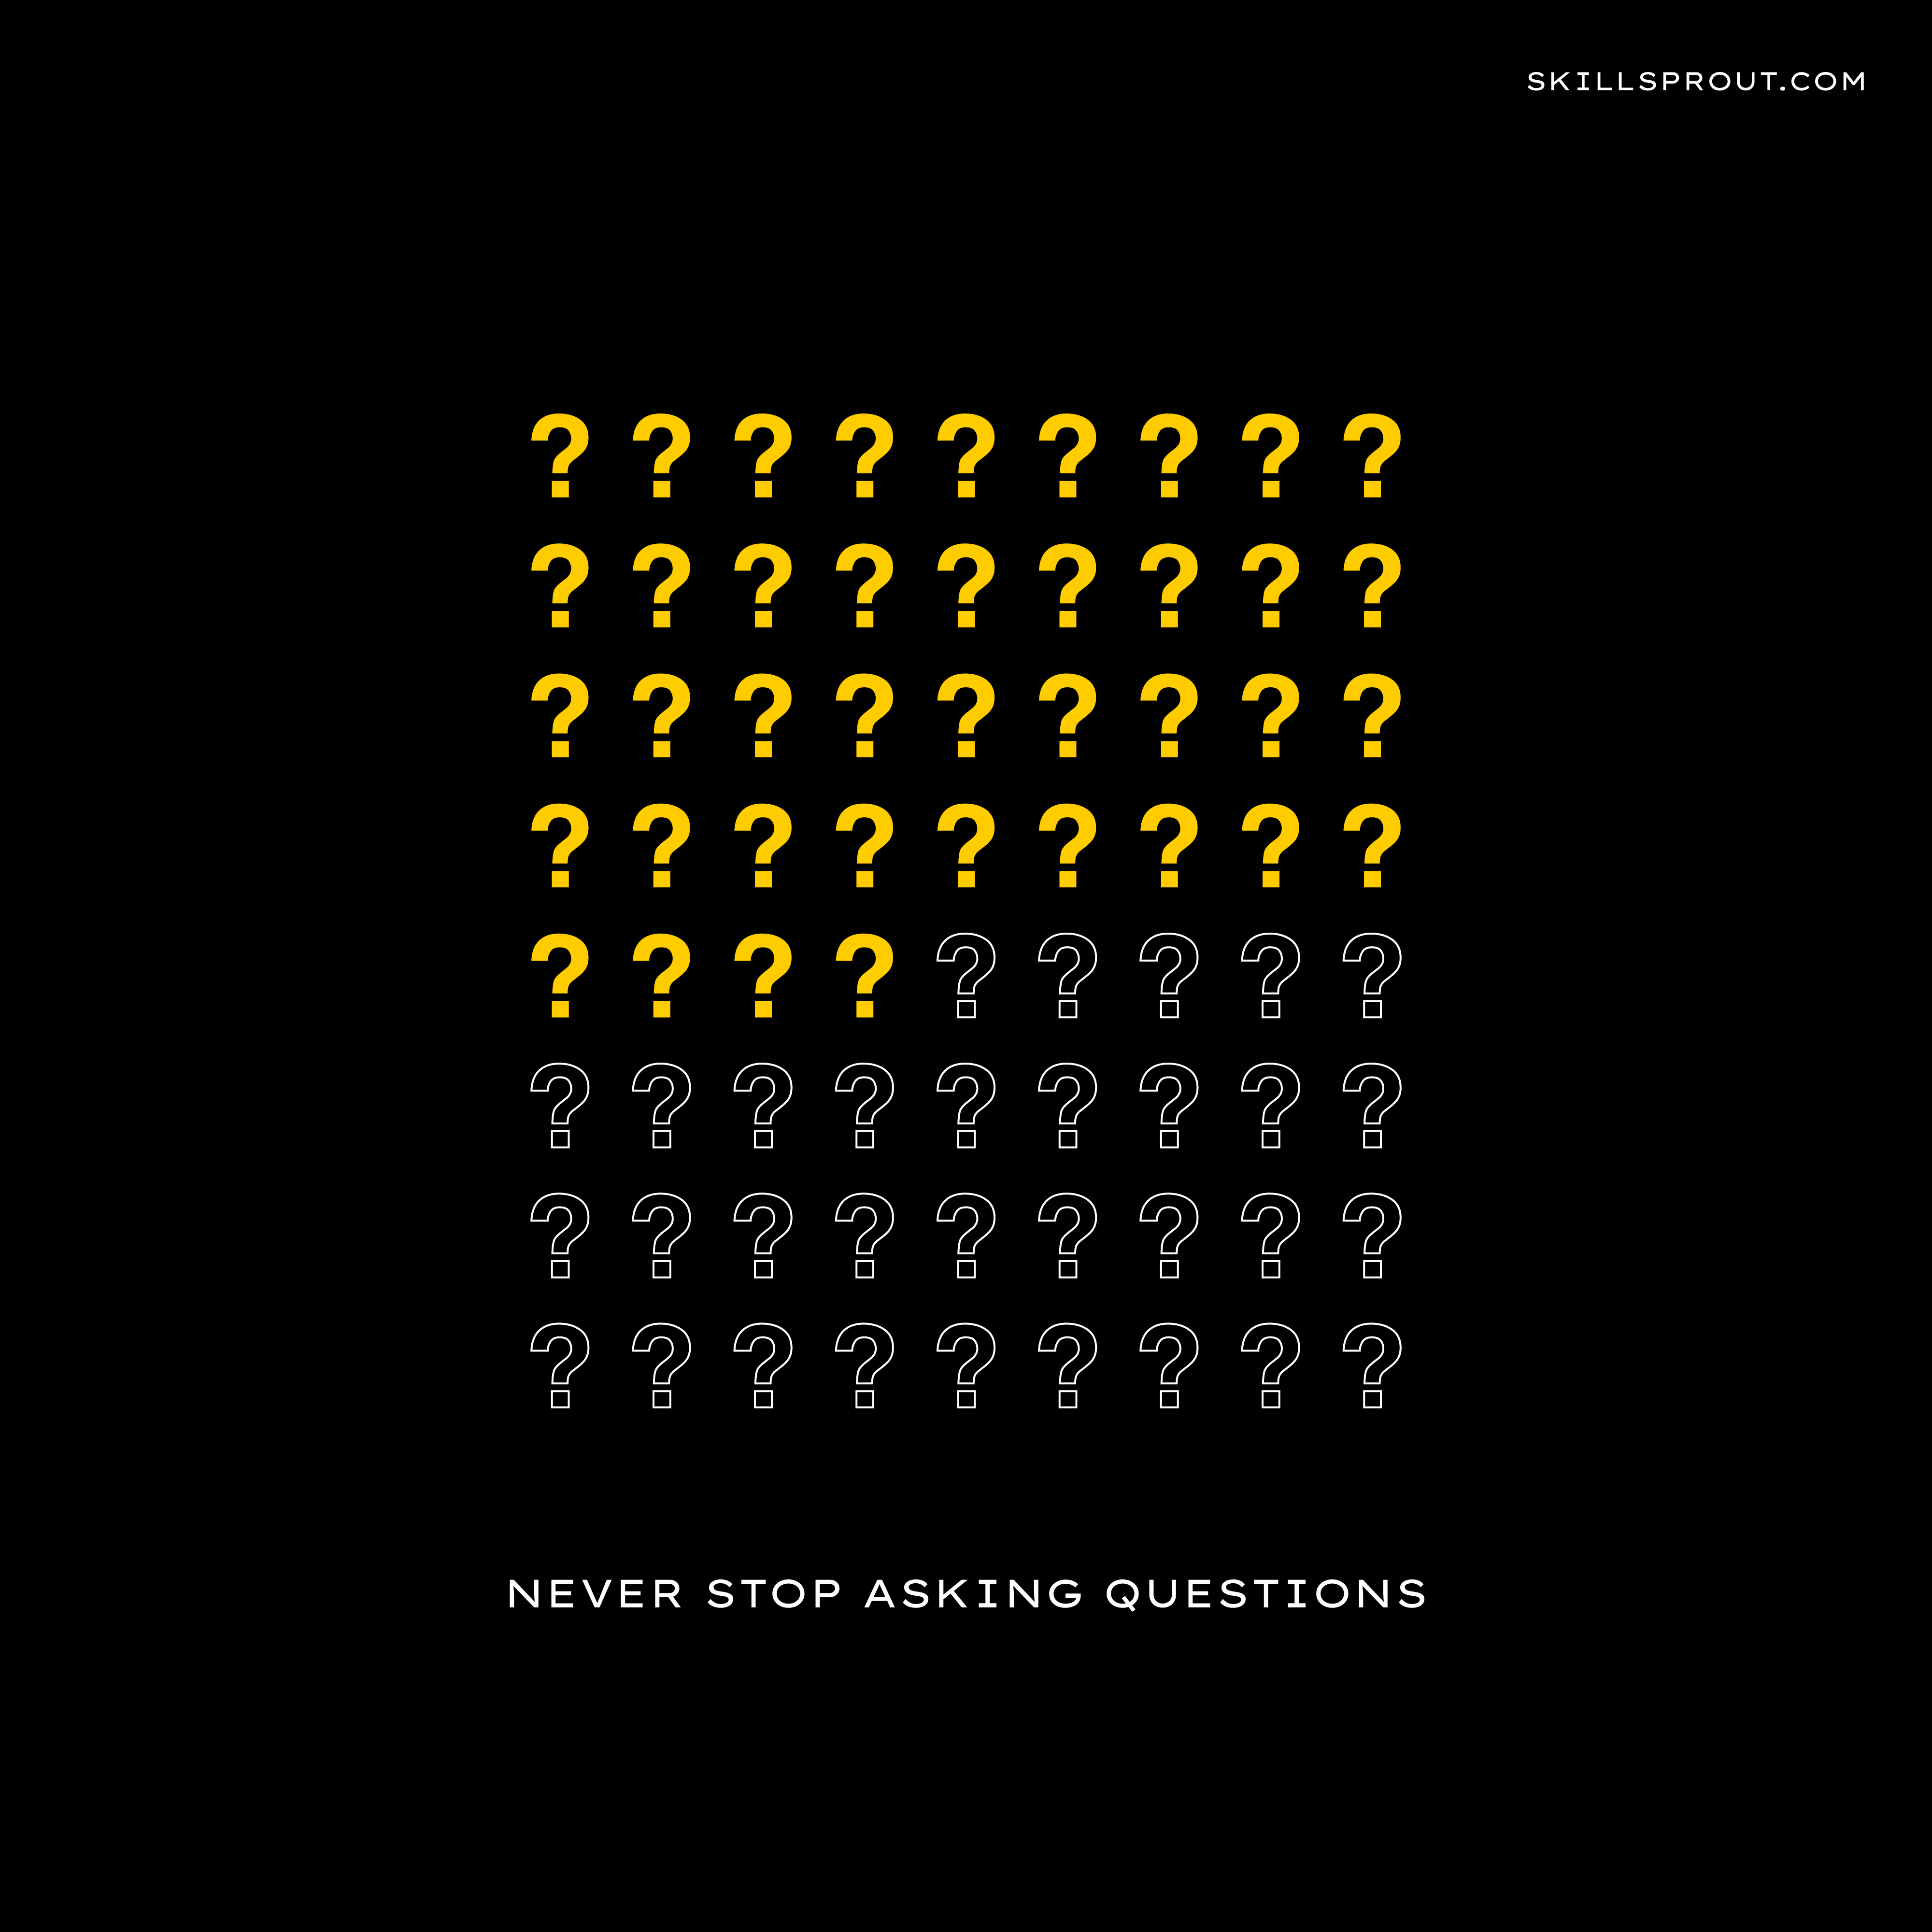 Critical thinking never stop asking questions